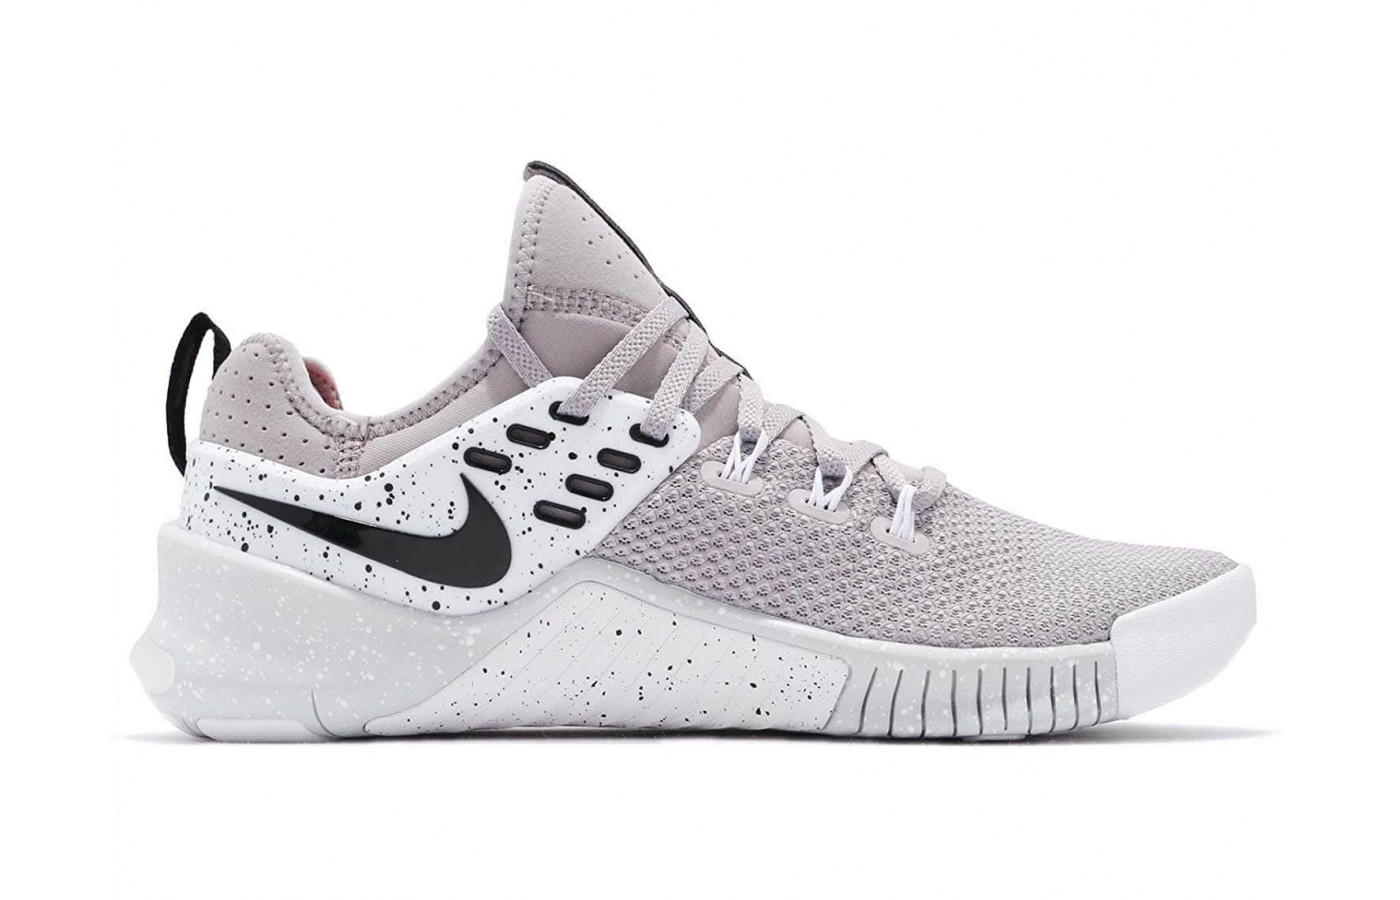 9865835cc7878 Nike Free X Metcon Reviewed - To Buy or Not in May 2019